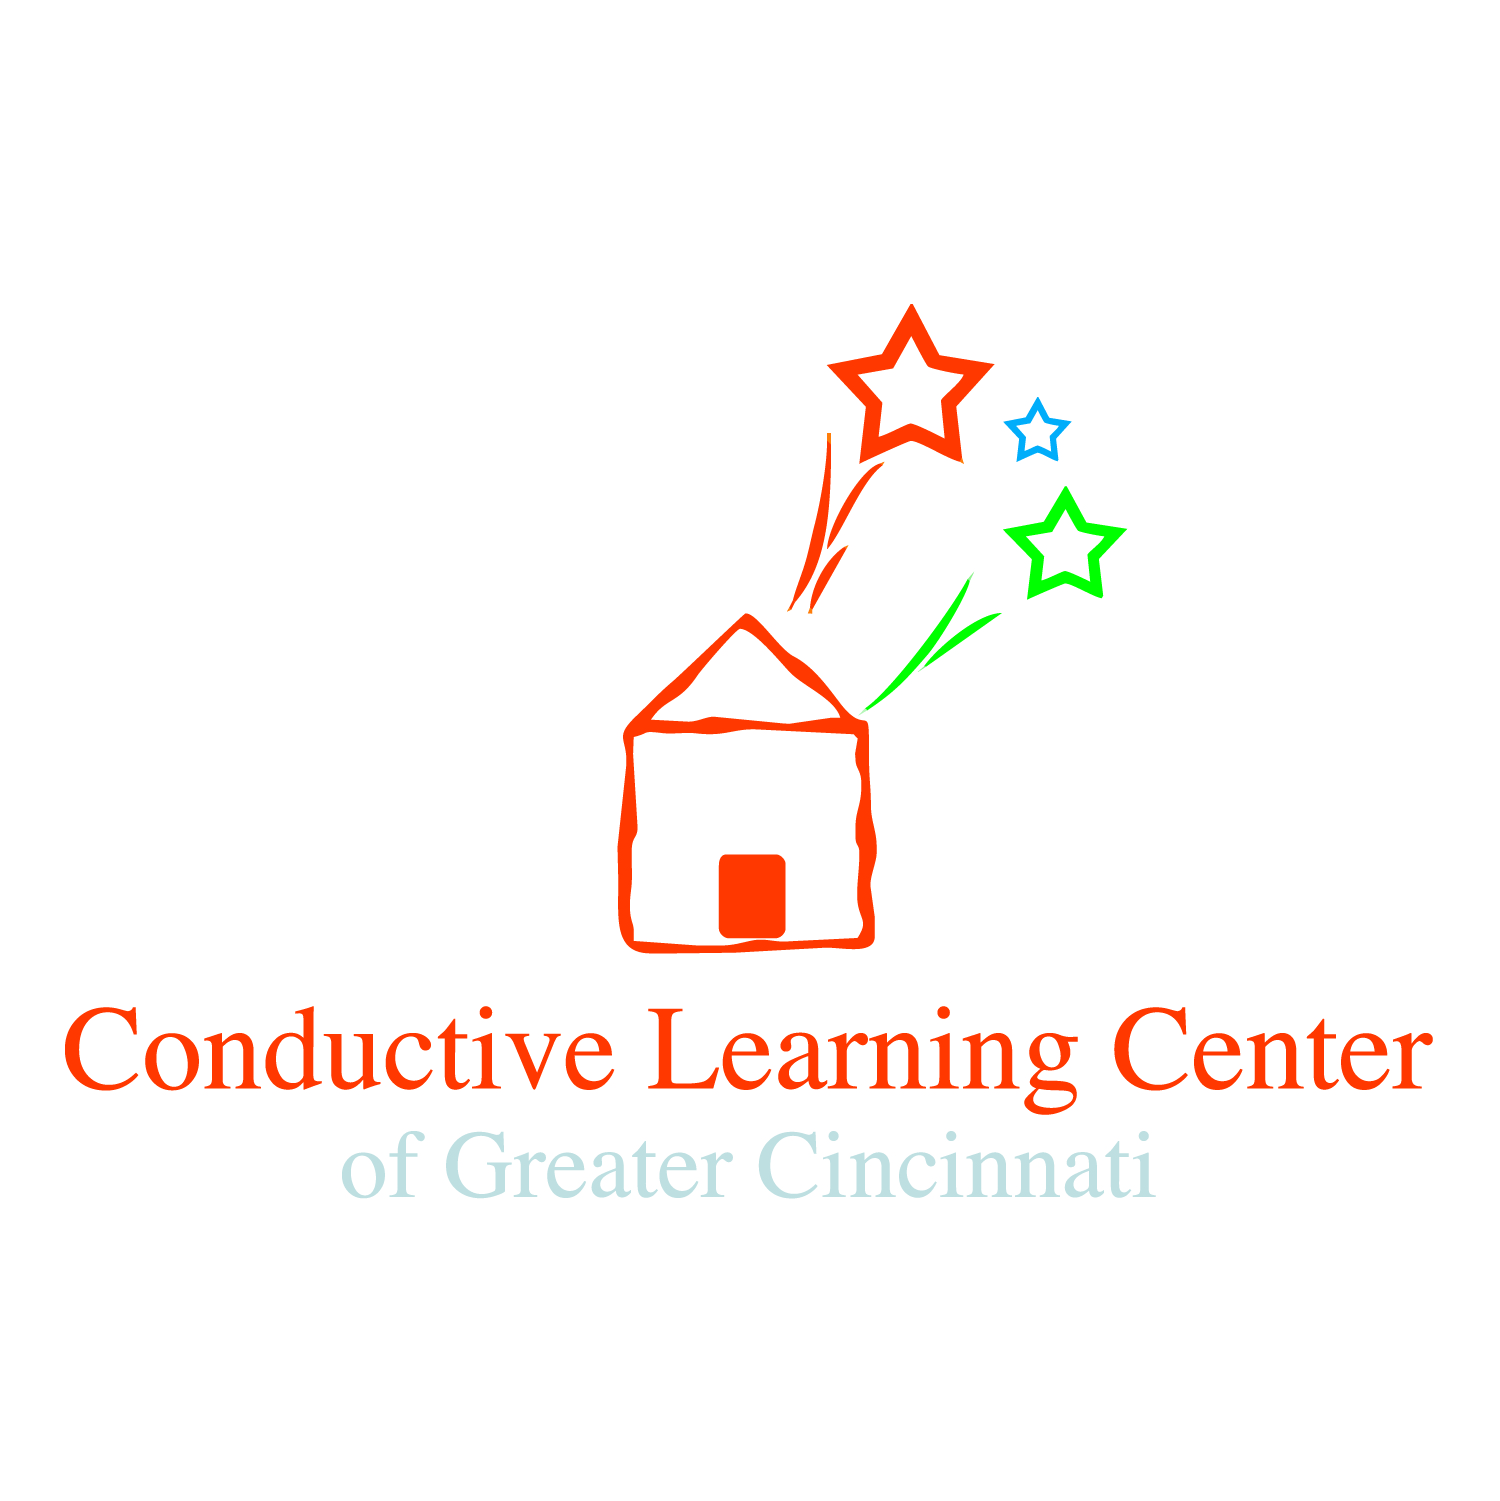 Conductive Learning Center of Greater Cincinnati